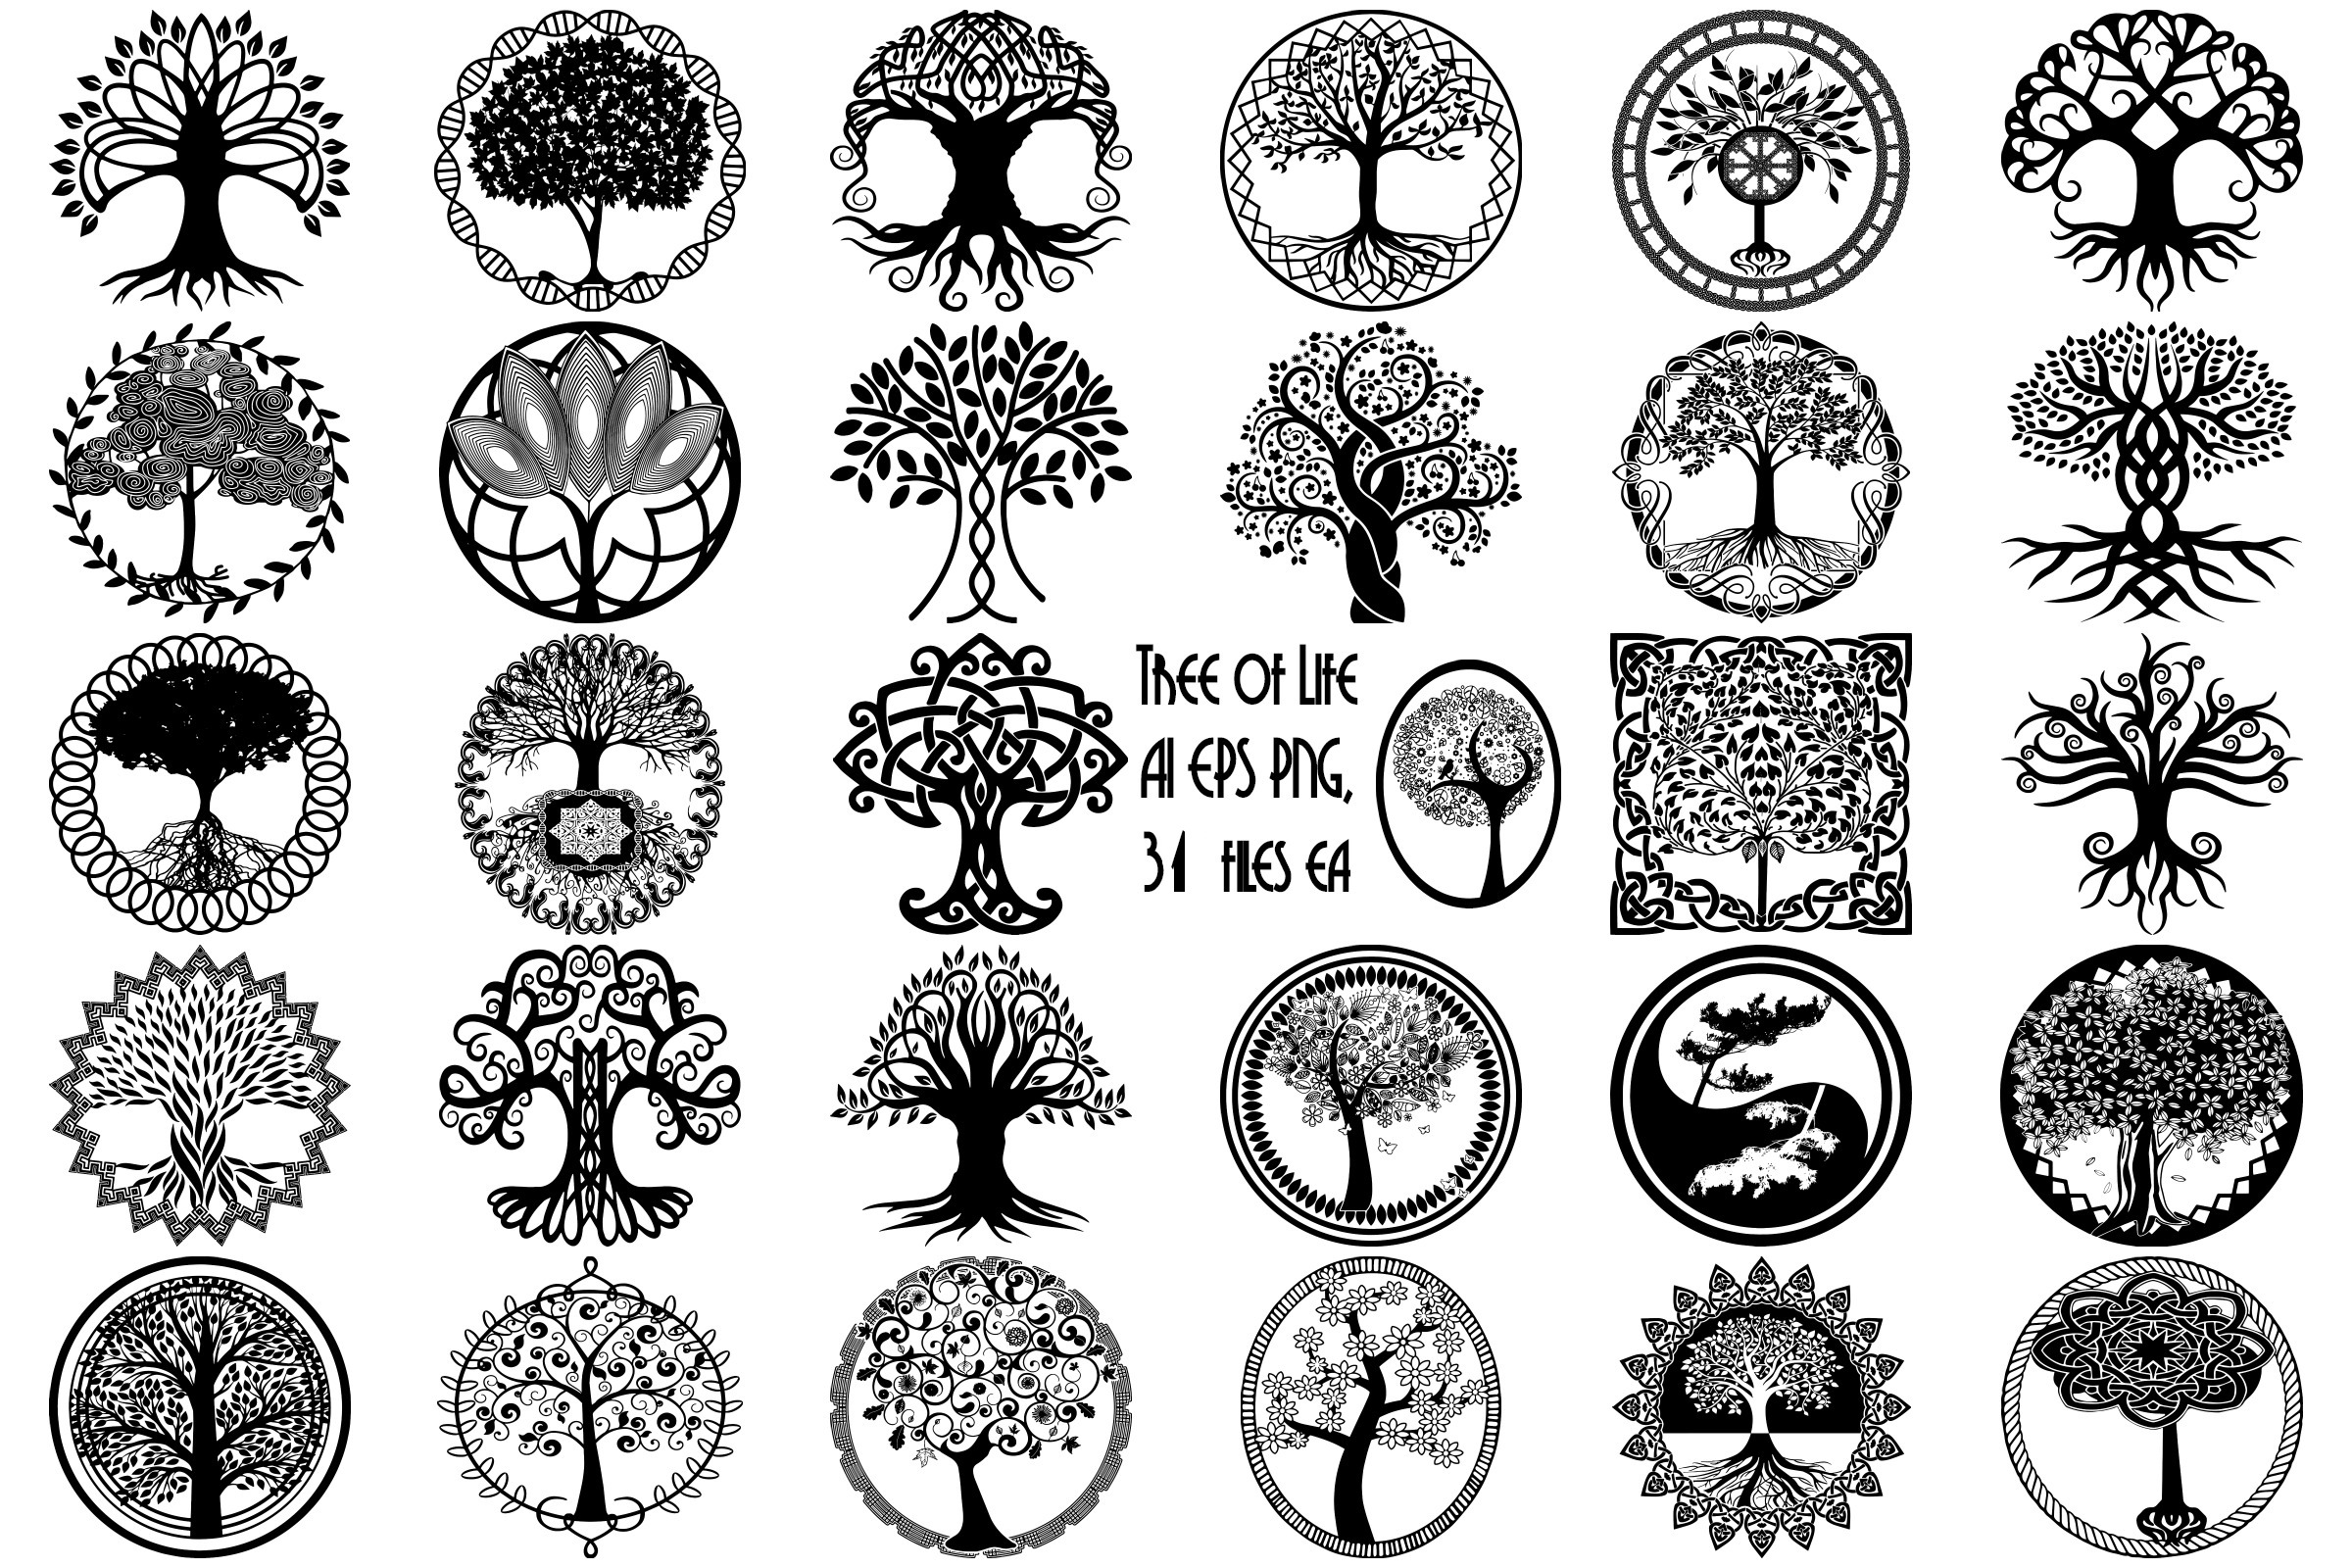 Tree of life silhouette clipart vector transparent download Tree of Life Silhouettes AI EPS Vector & PNG vector transparent download